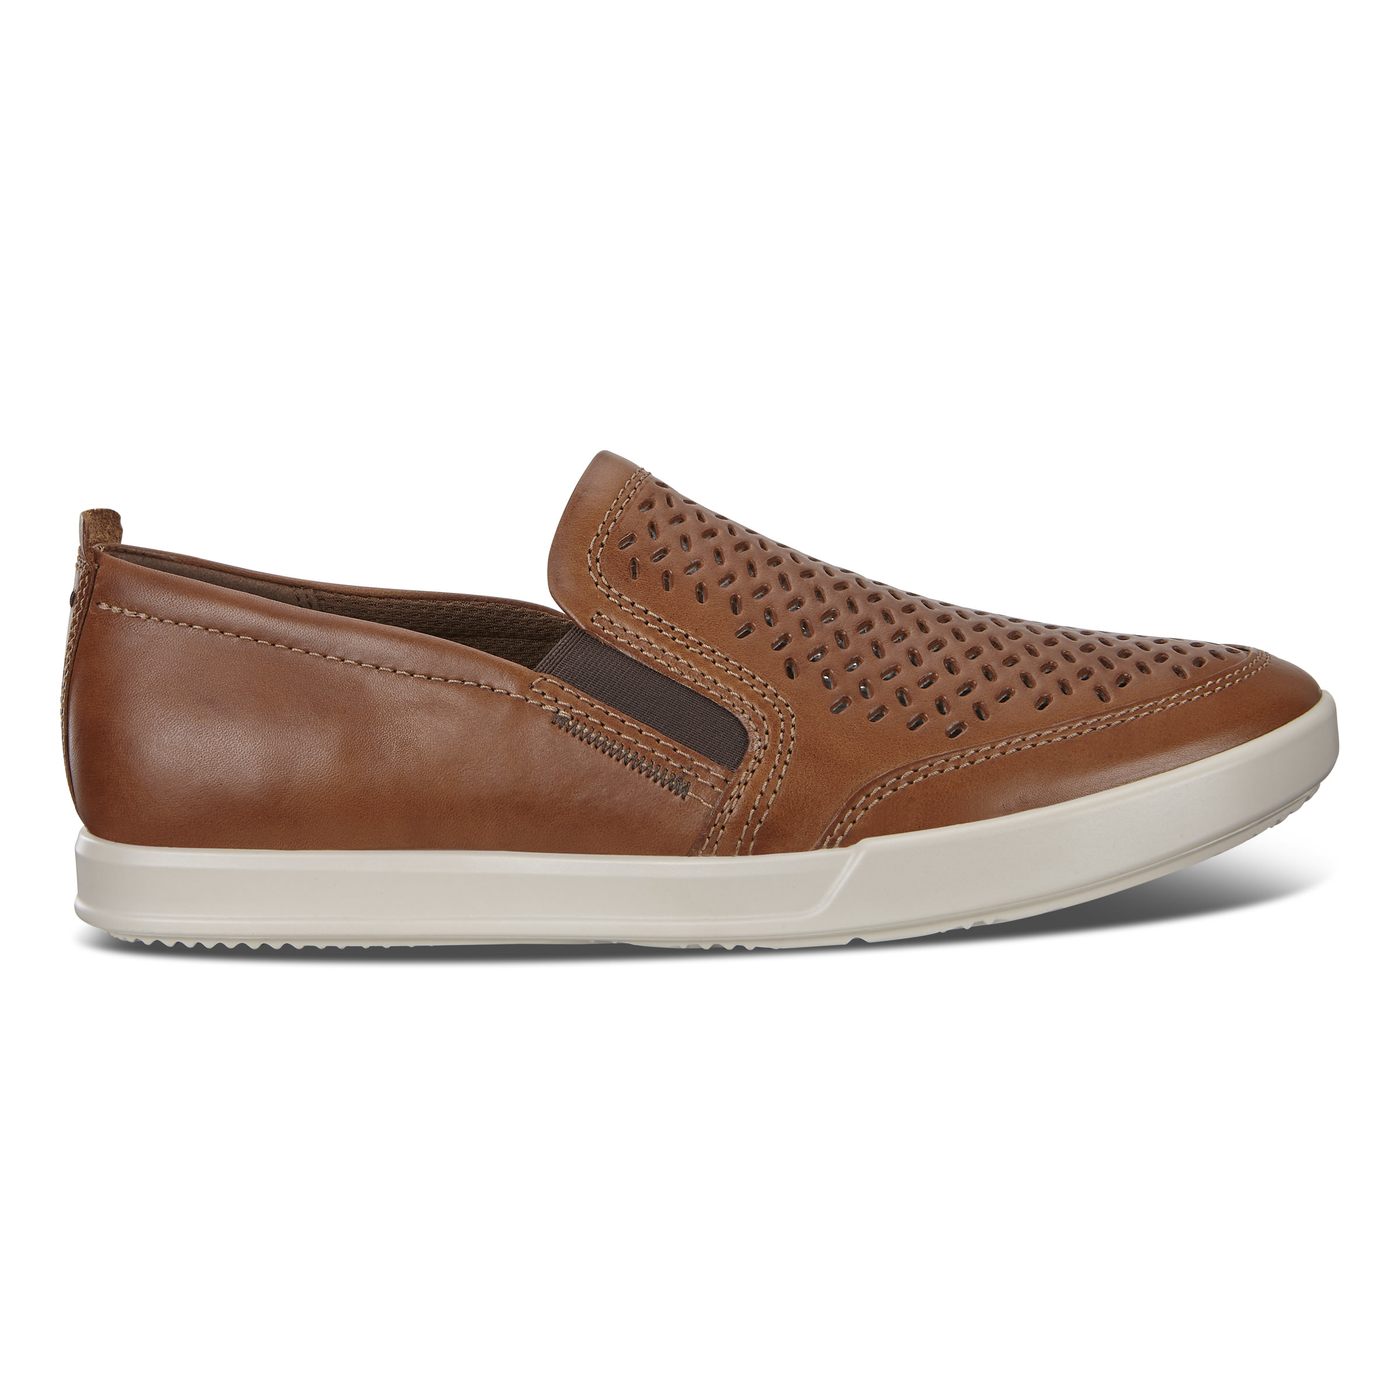 ECCO: Extra 40% Off Sale Styles: Men's Collin 2.0 Slip-On Shoes